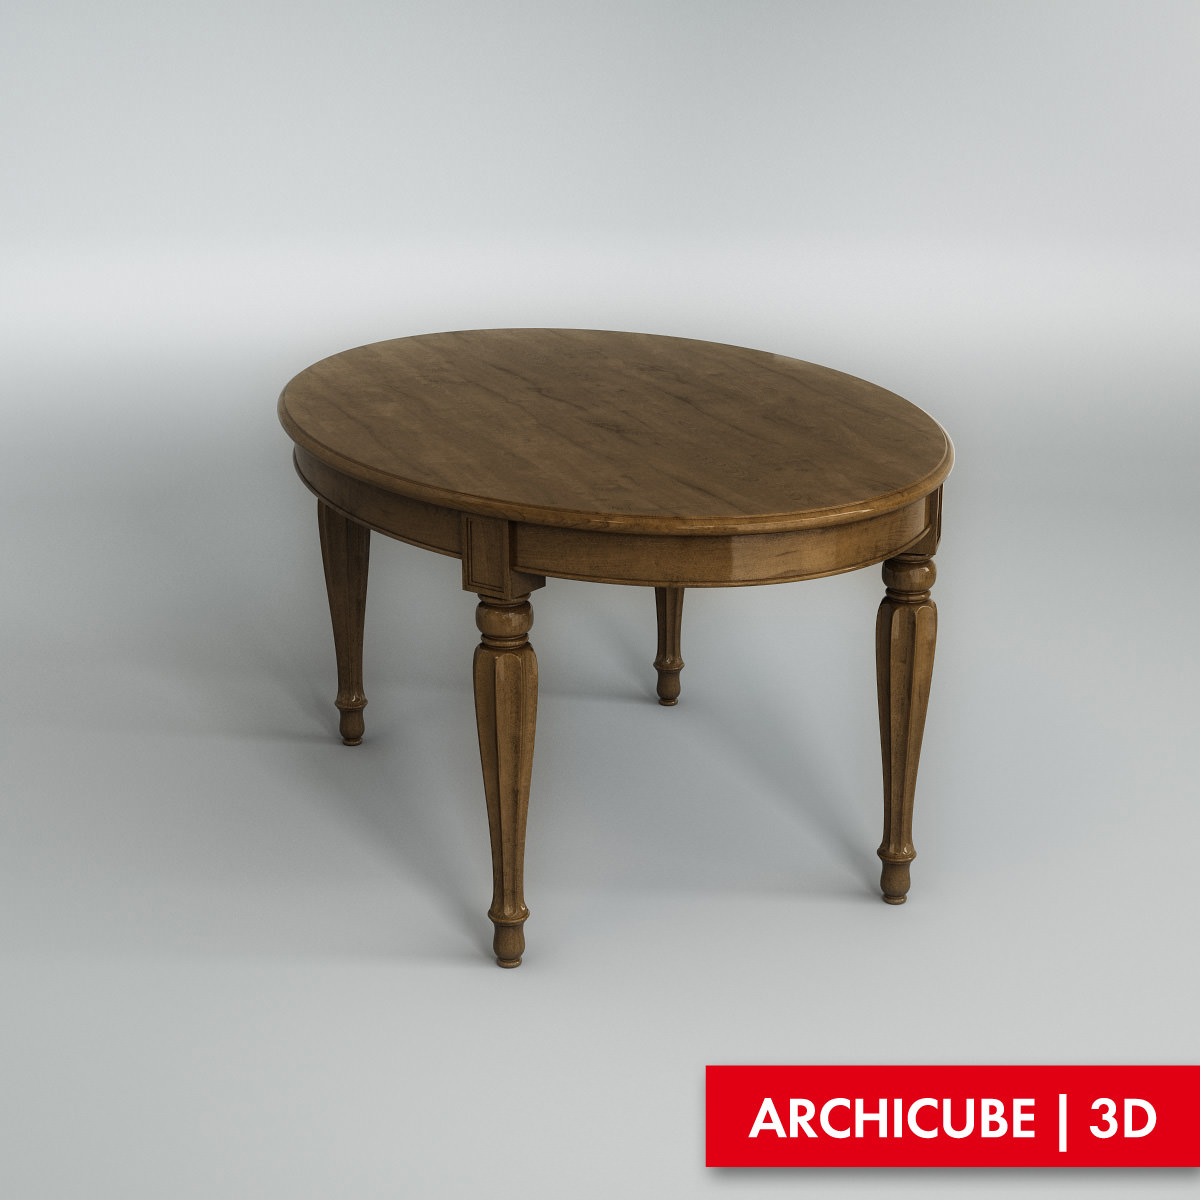 Dining table 3d model max obj fbx for Dining table models